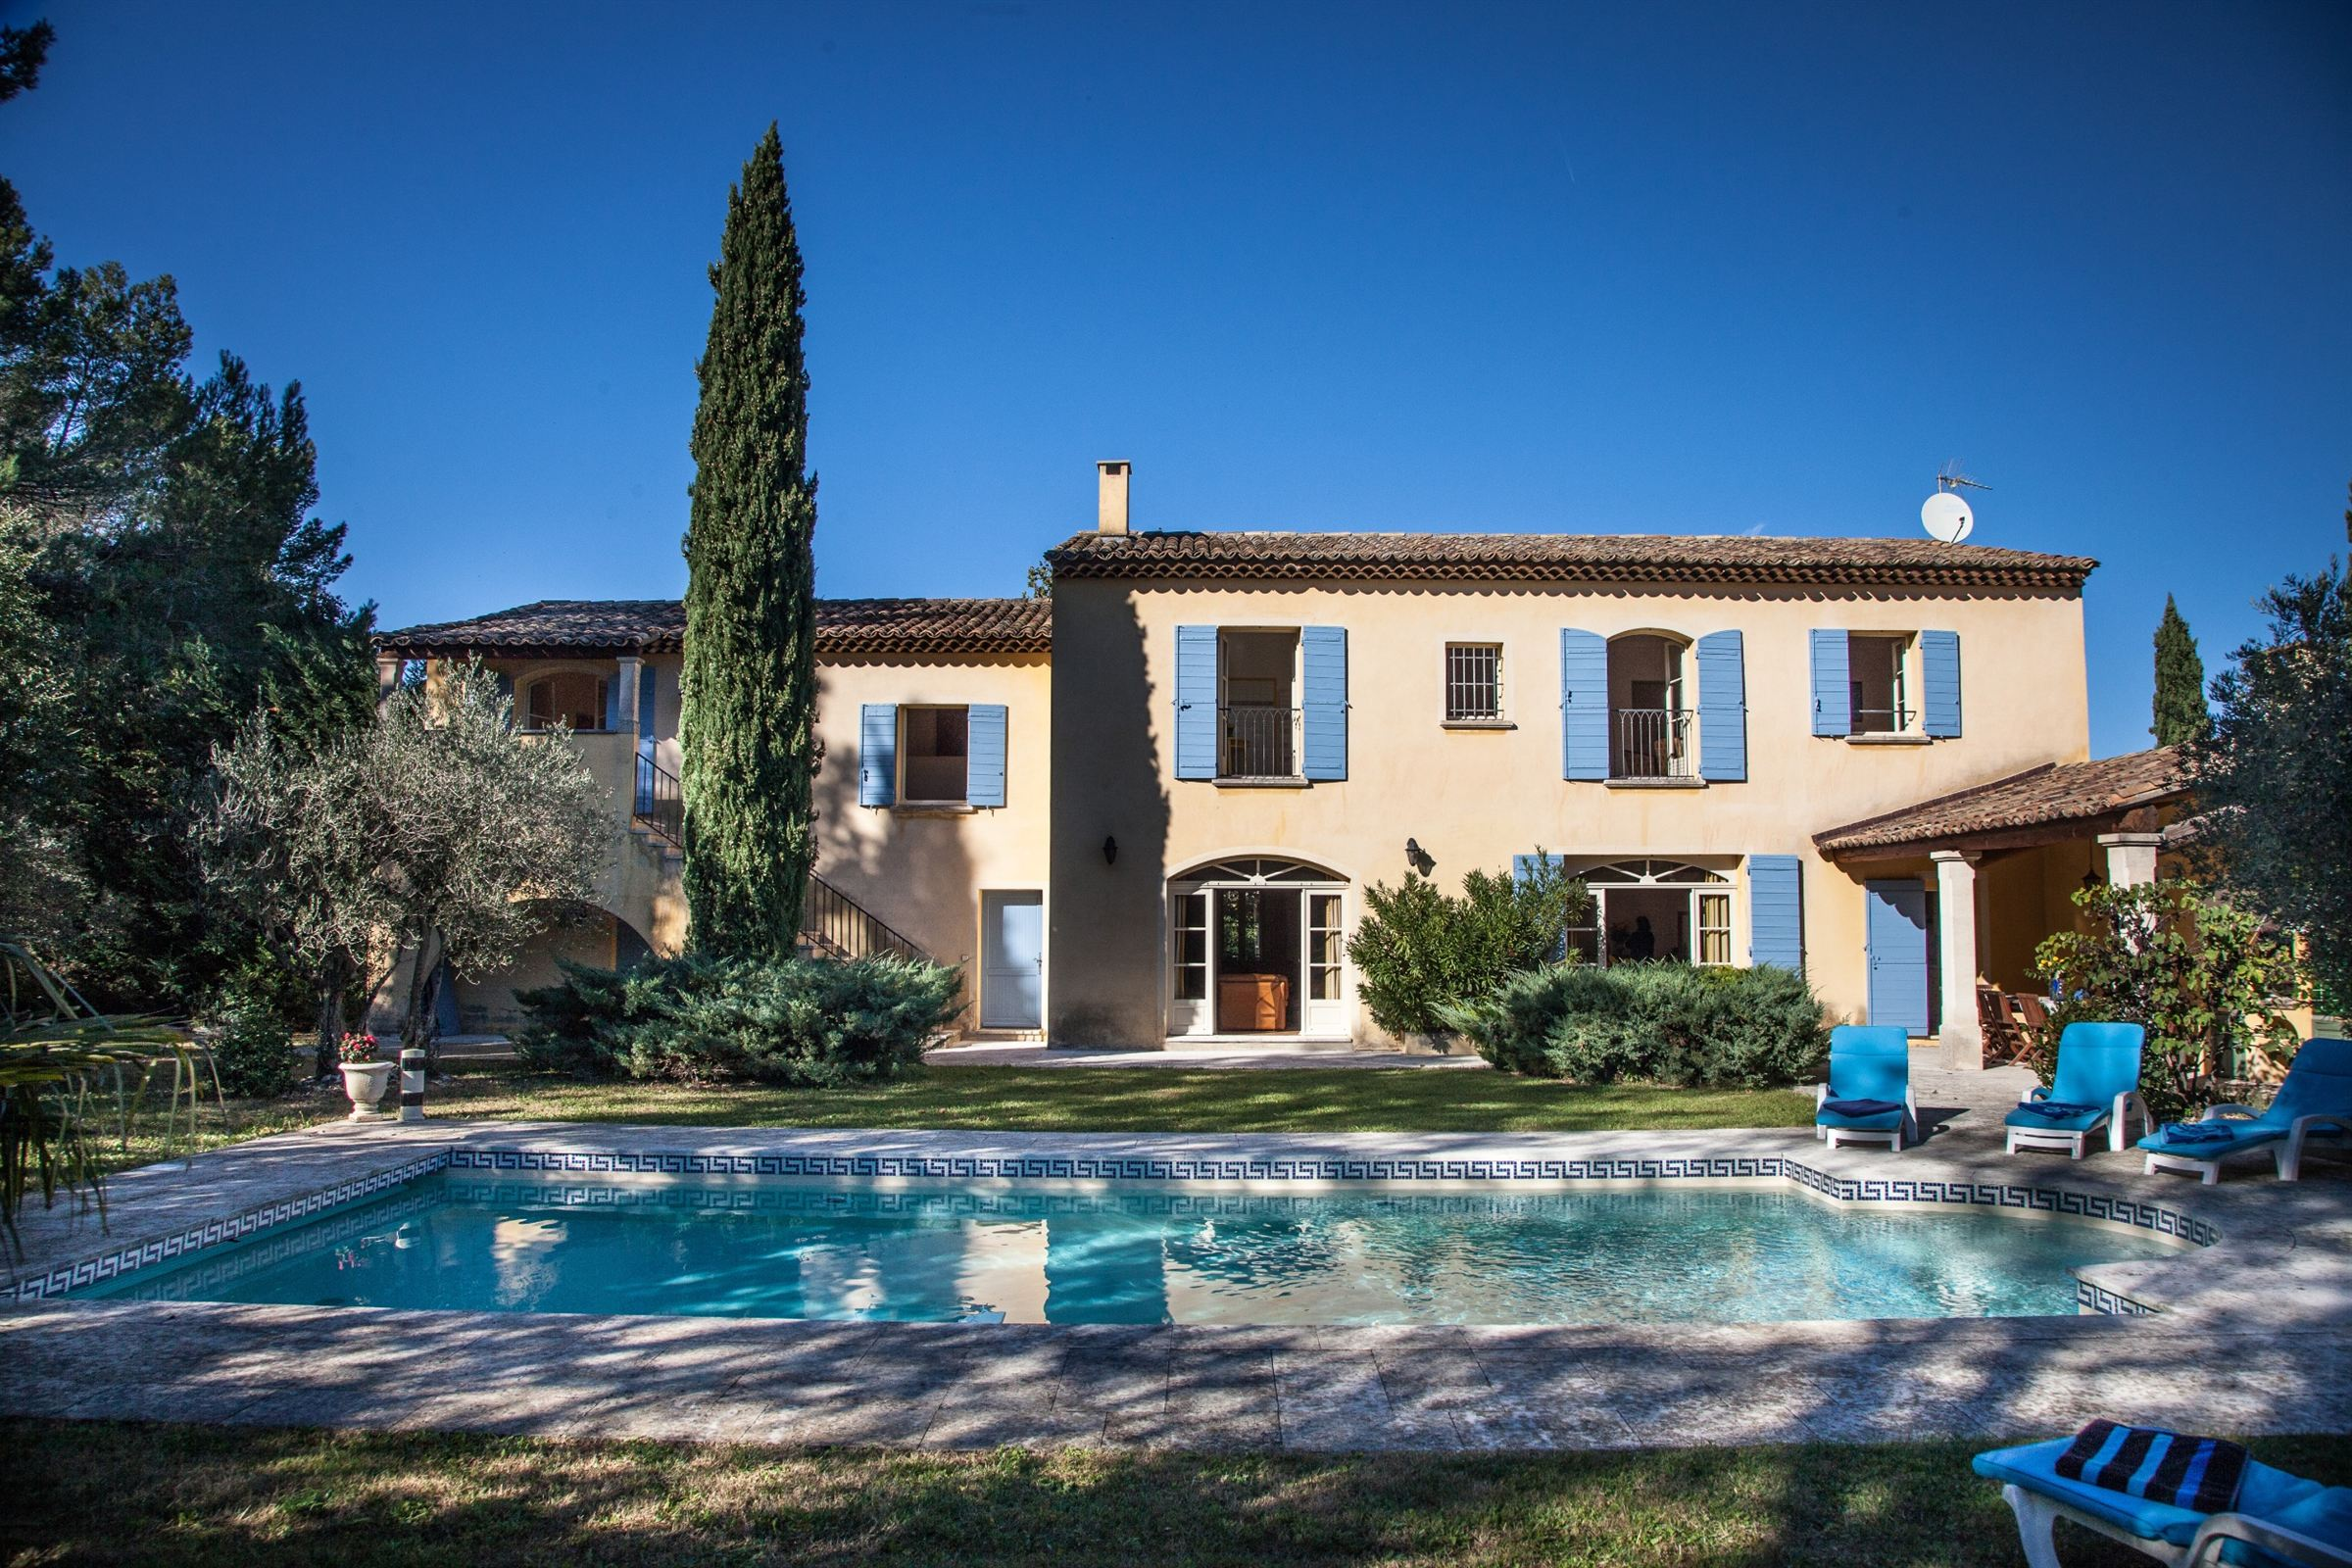 Property For Sale at Saint Rémy de Provence, beautiful provencal bastide close to the center